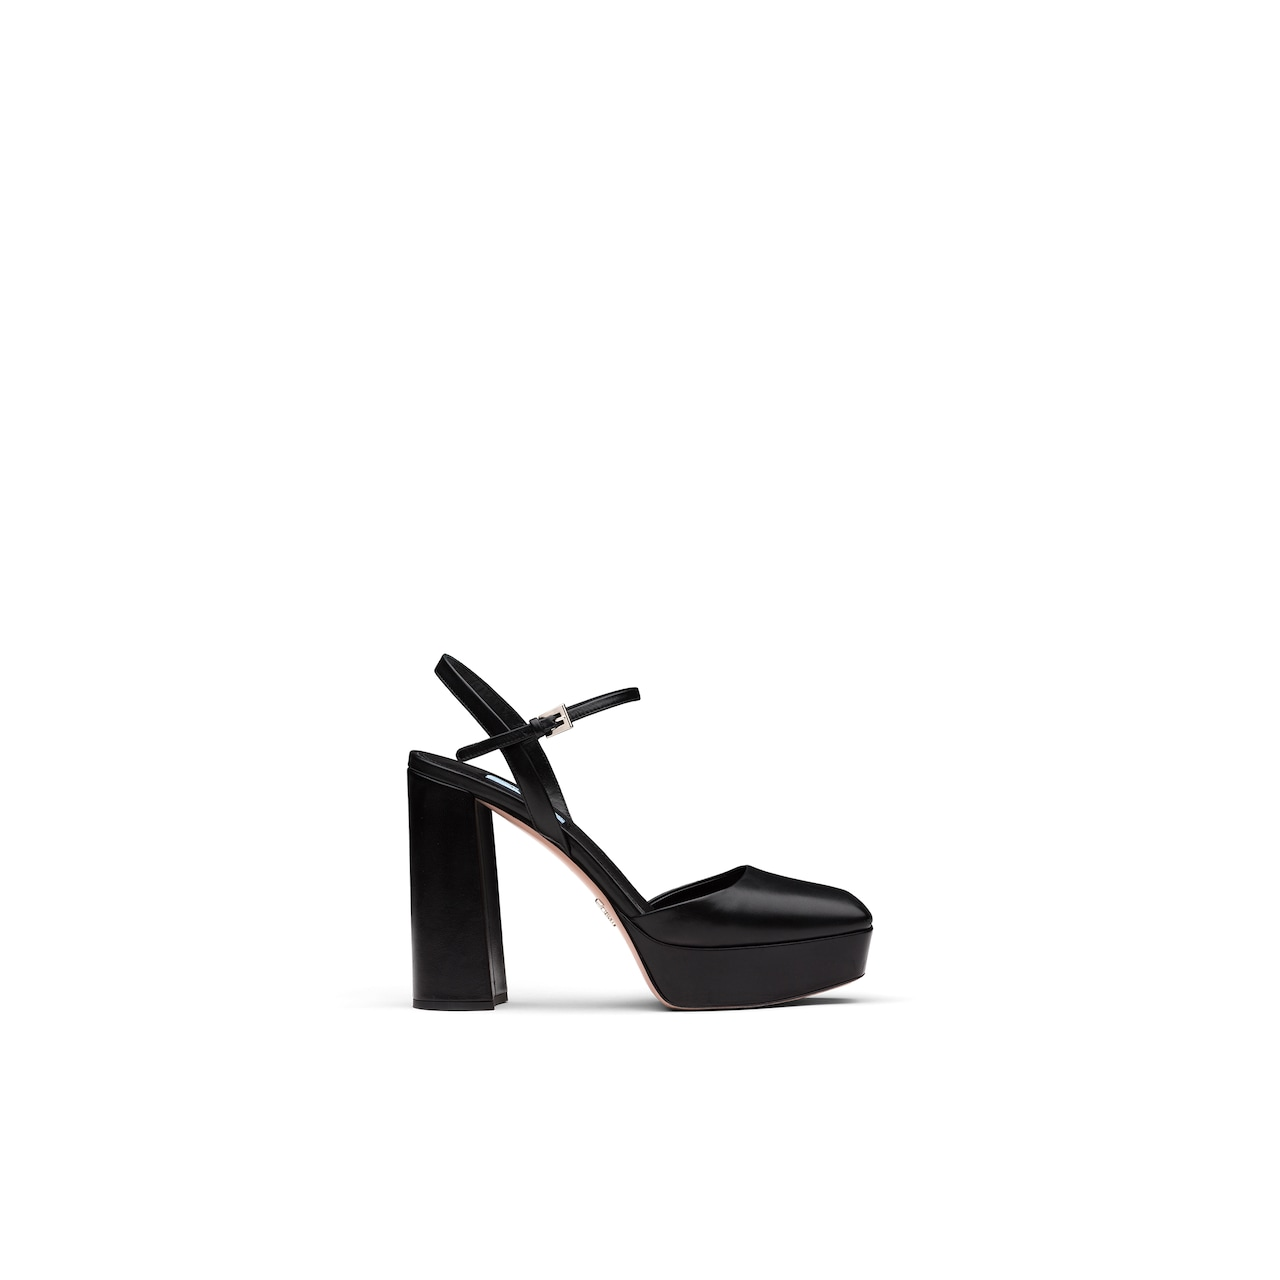 Leather square toe sandals 2